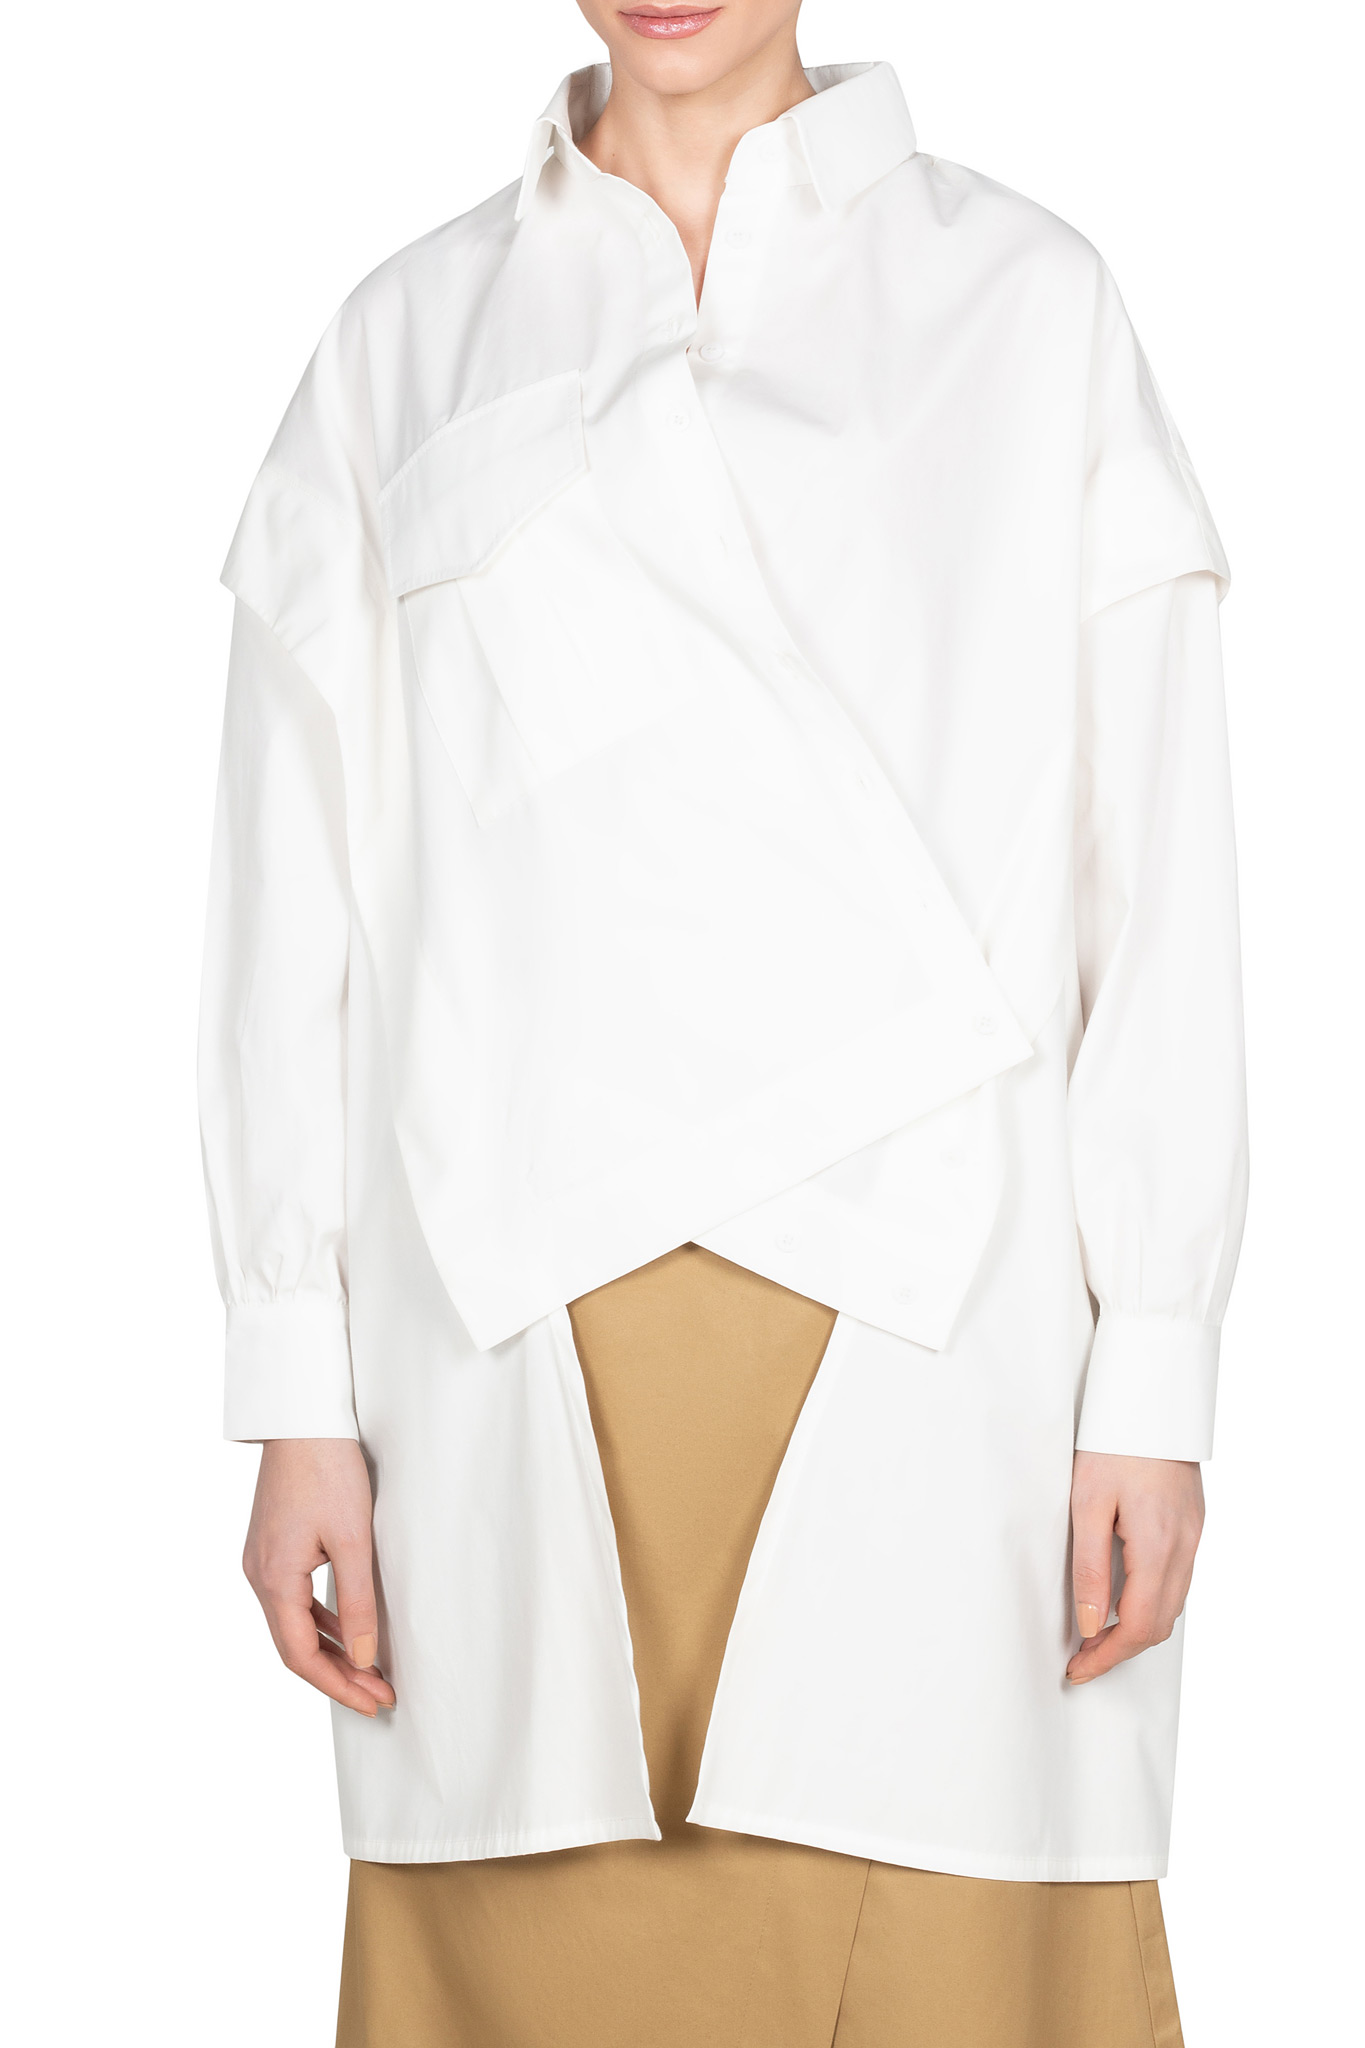 Transformable Shirt China by Z.G.EST on curated-crowd.com